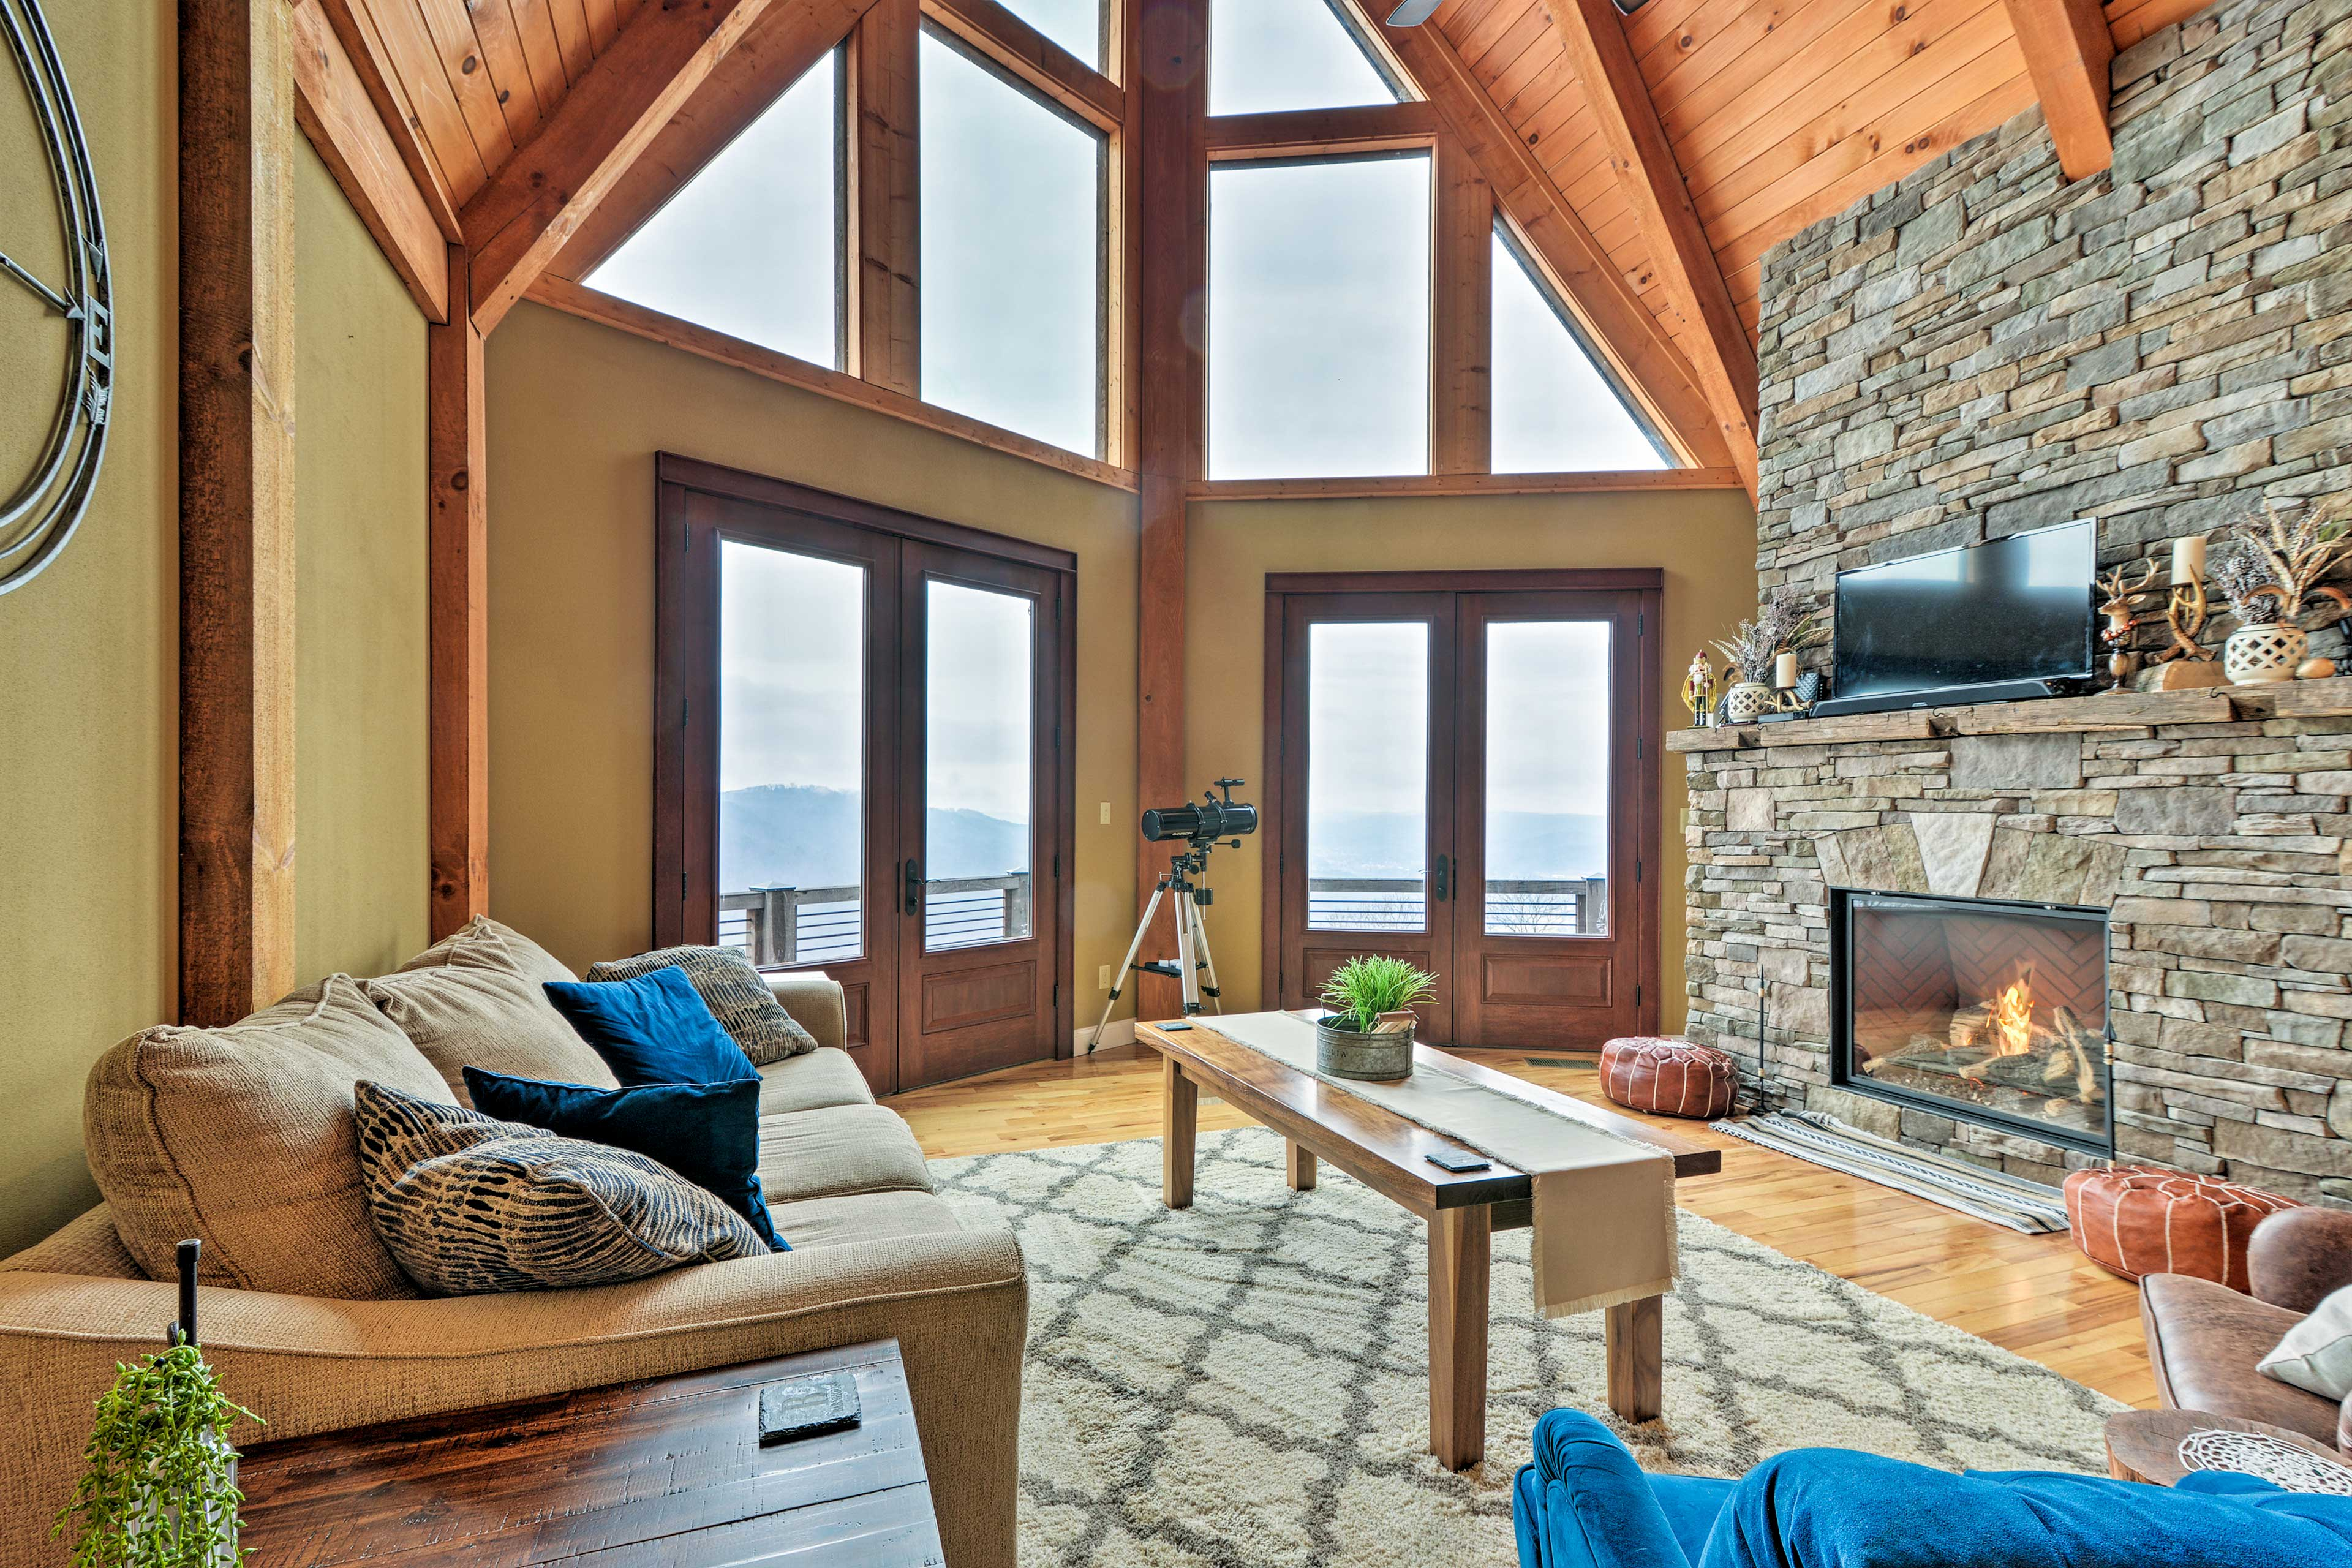 This rustic vacation rental in Caldwell is ideal for your next mountain escape!